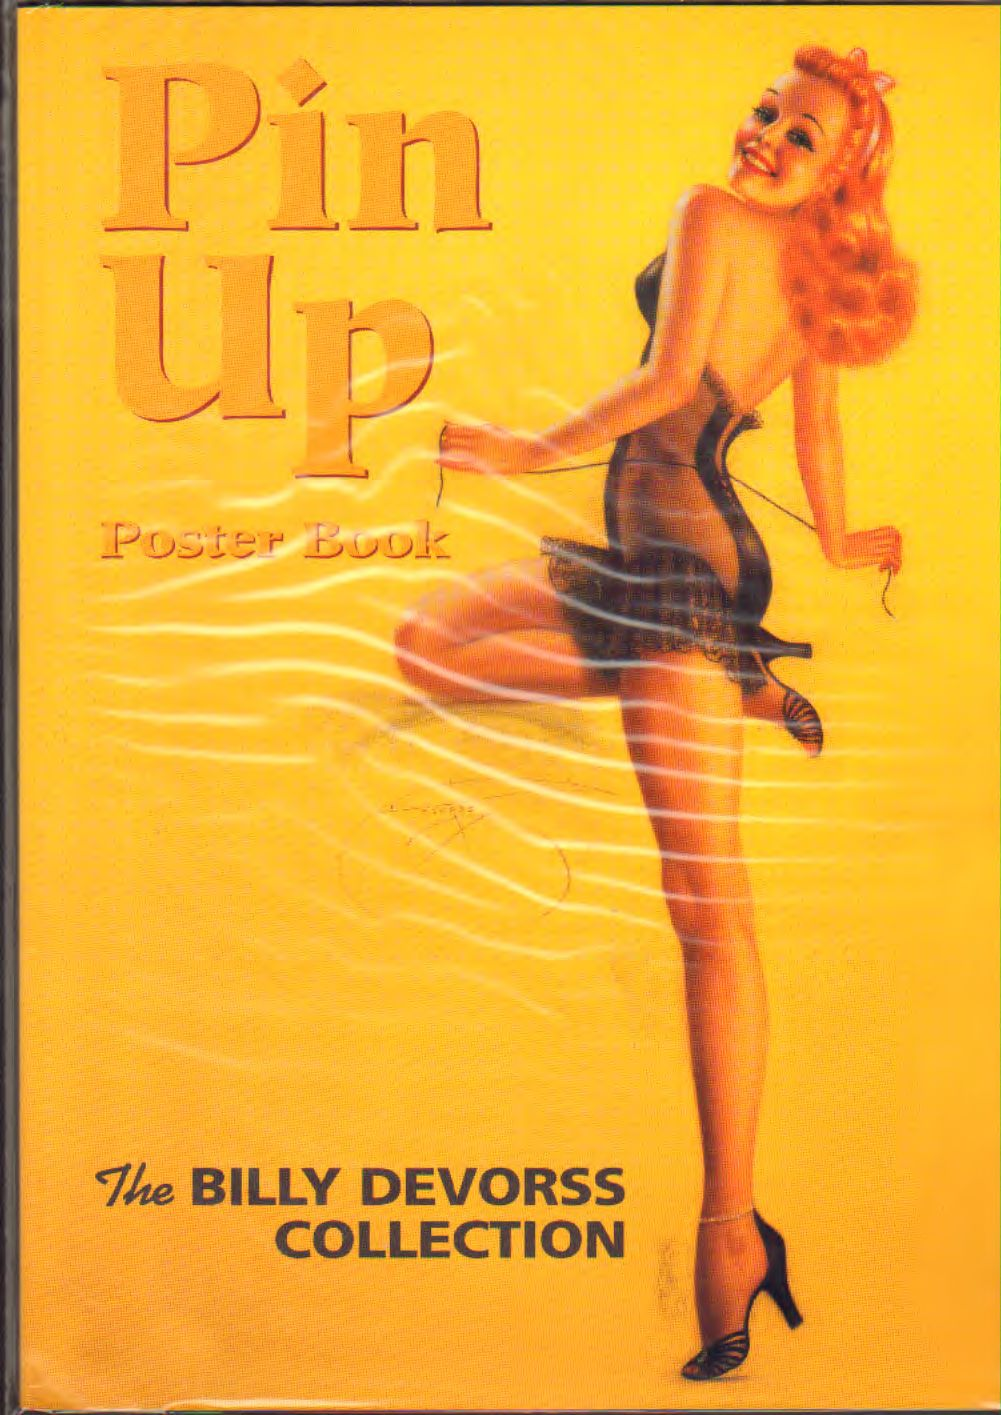 Billy Devorss - Pin up poster book the Billy Devorss collection